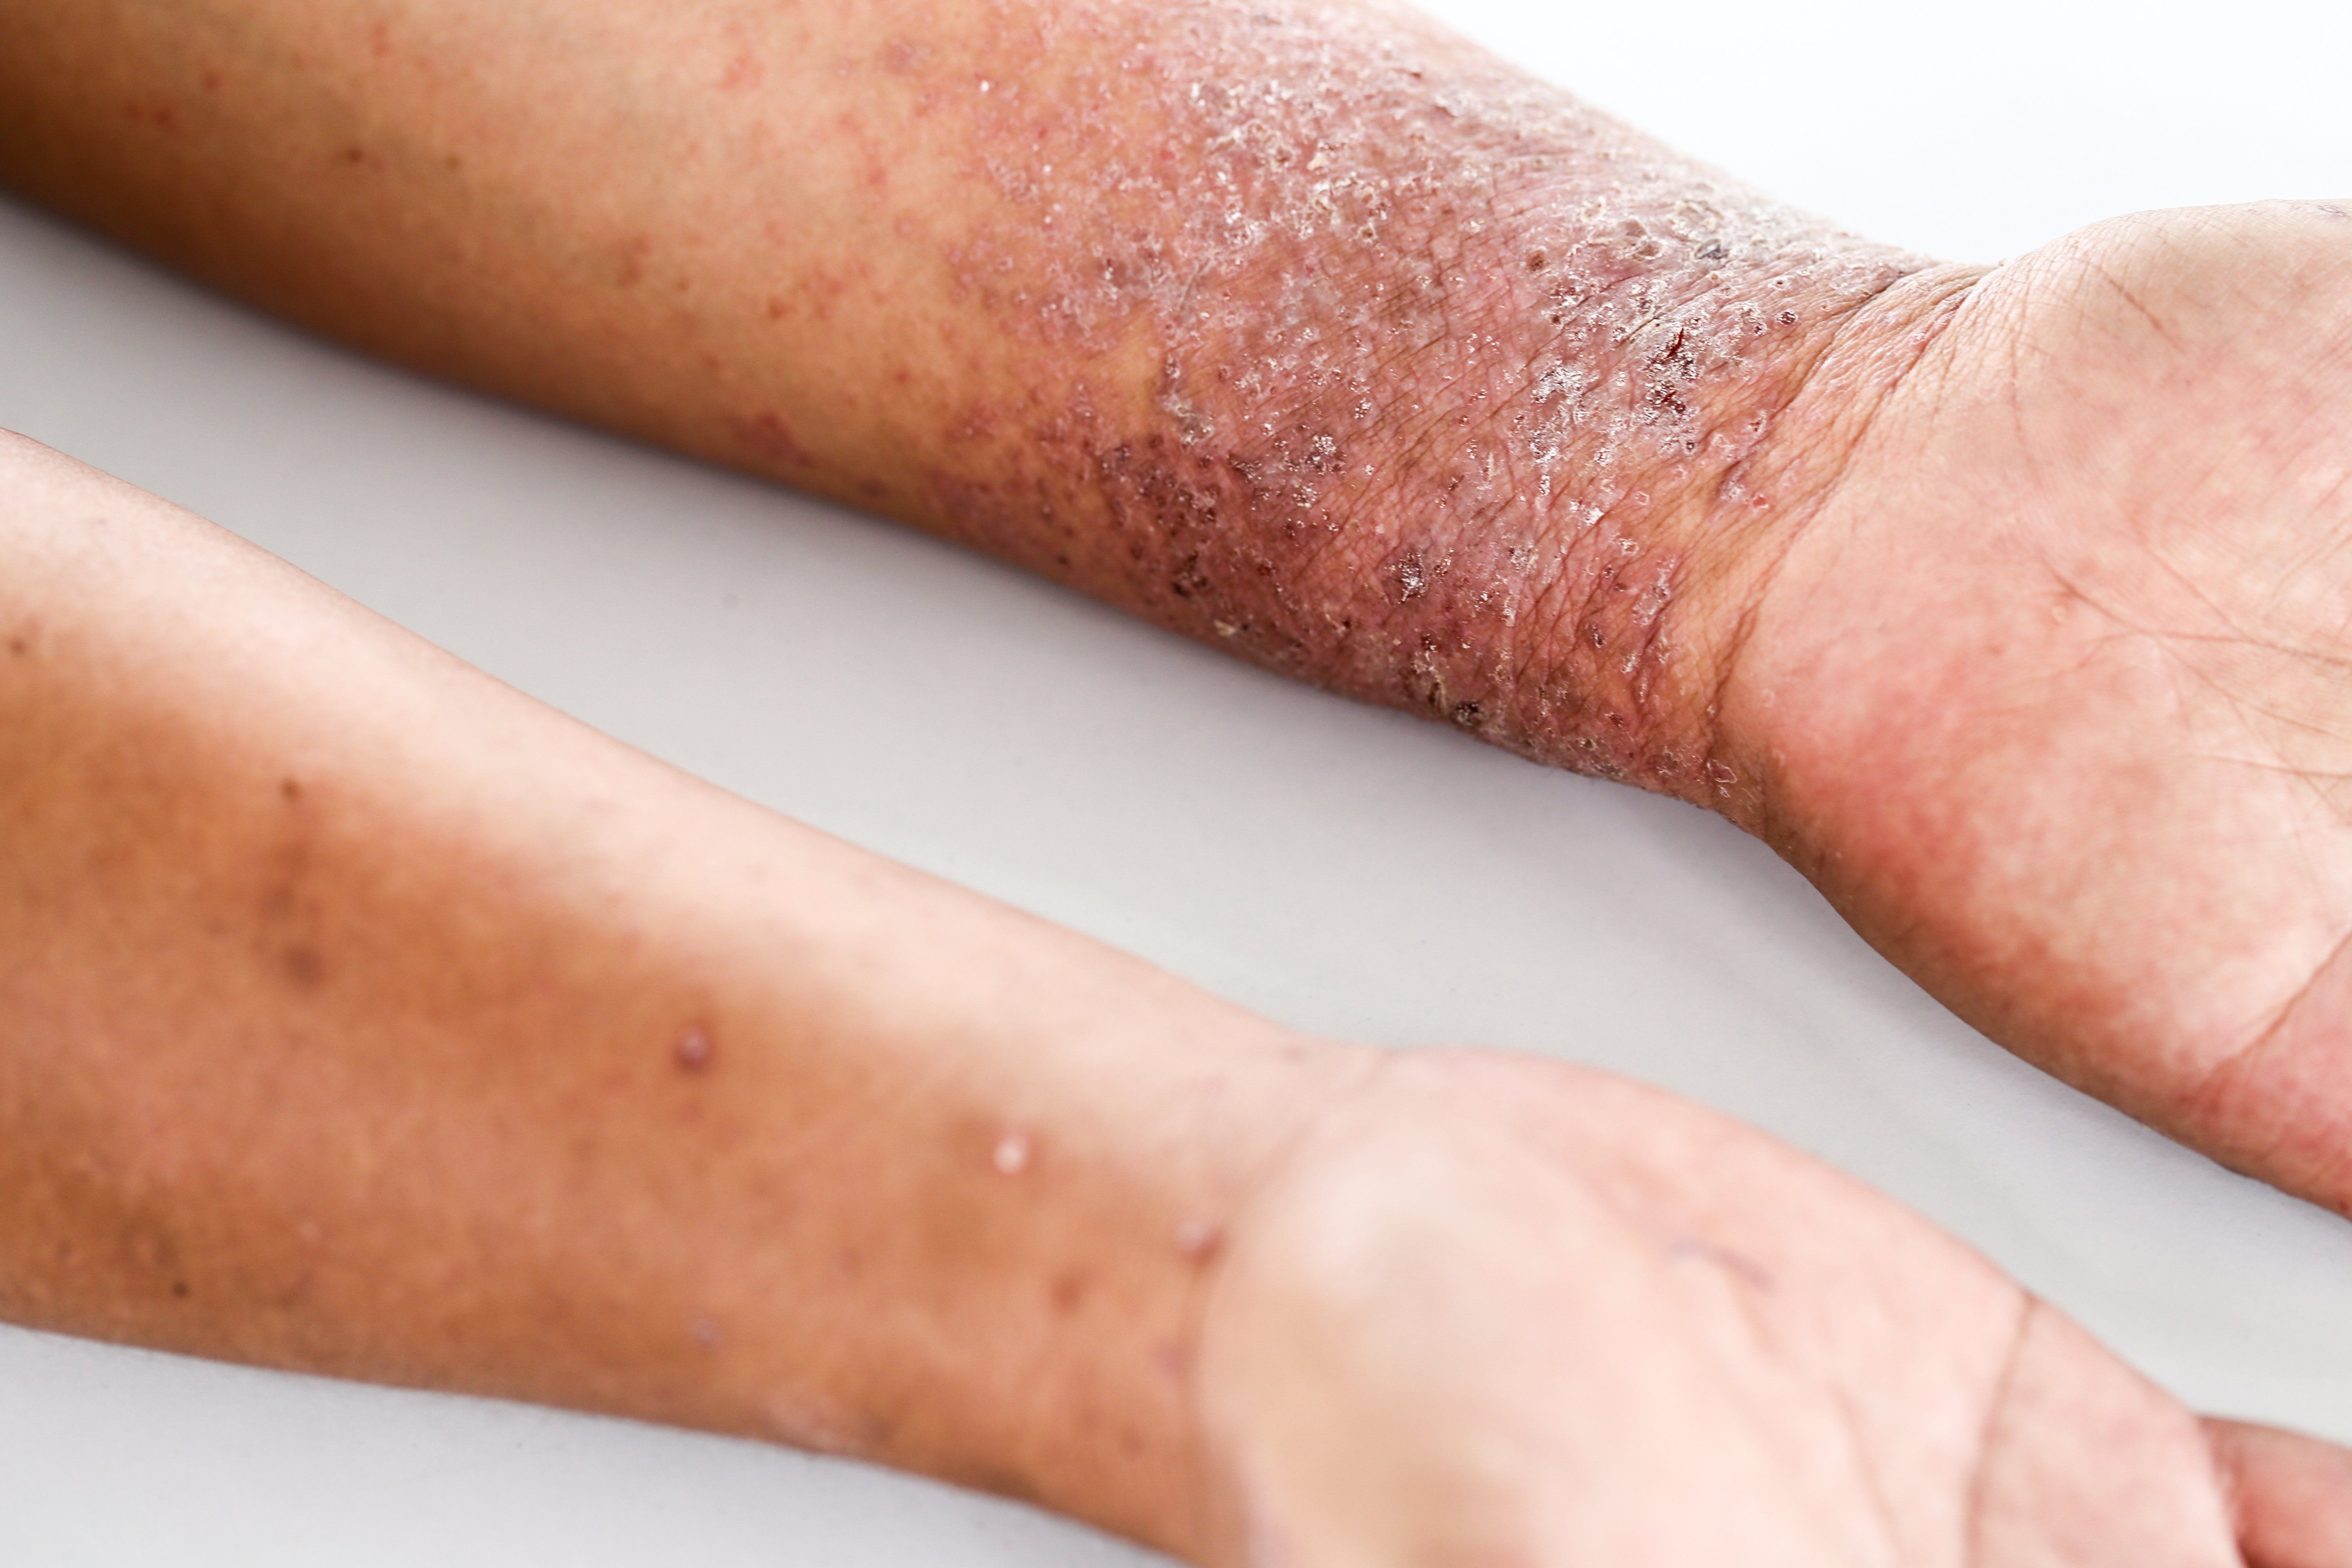 atopic dermatitis on arms